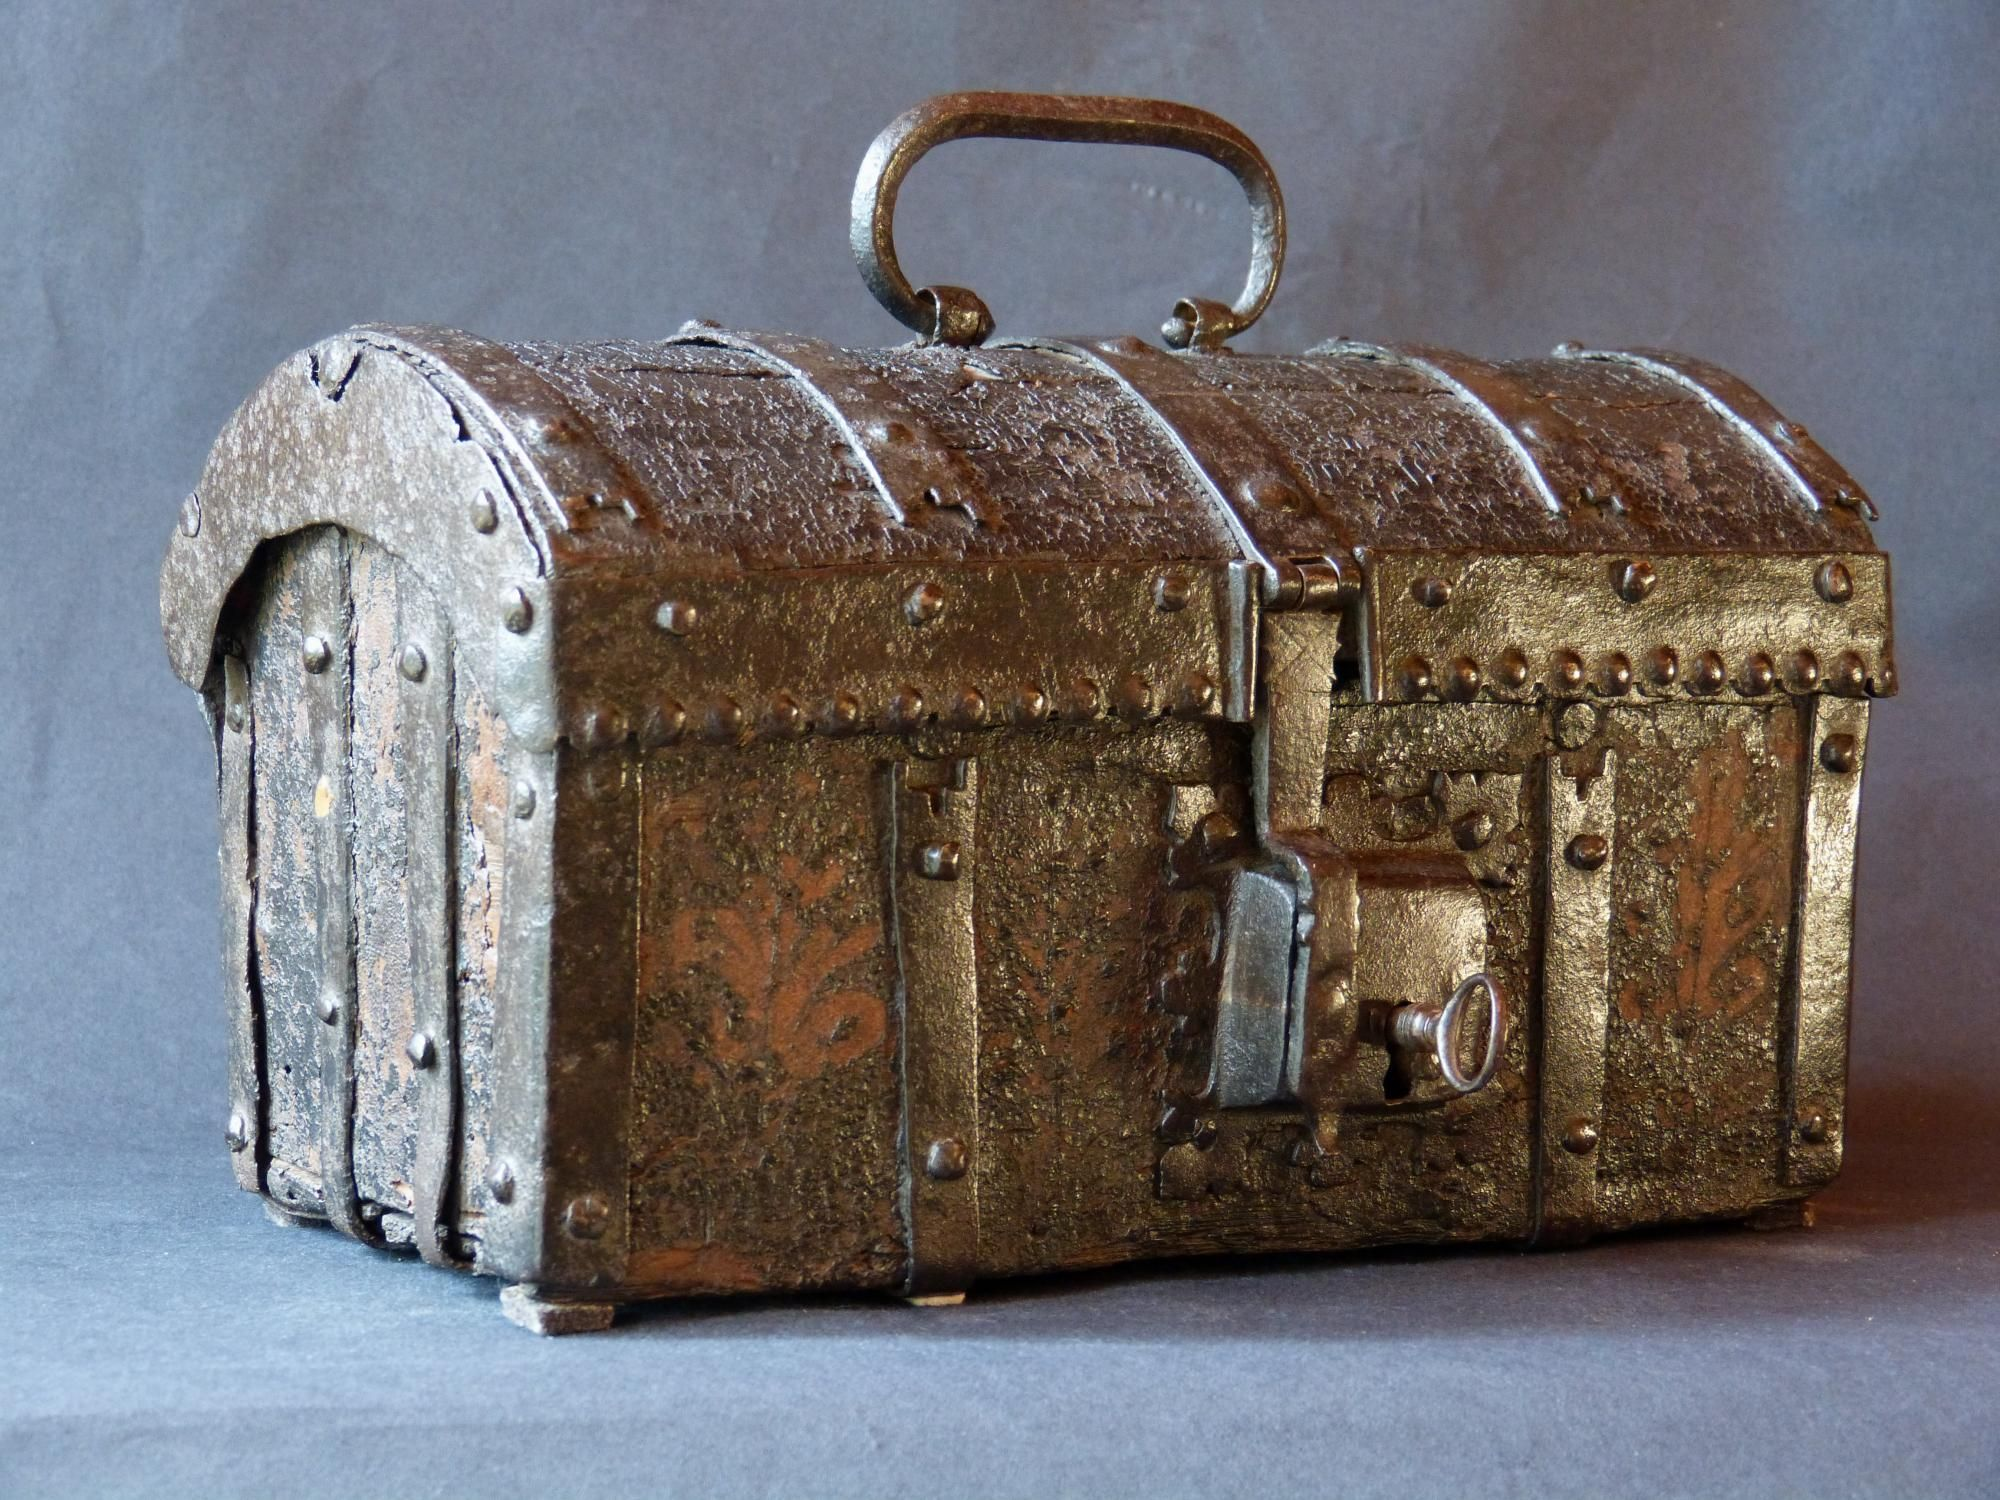 Antique For Sale Small Iron Chest Metal Box Or Casket End